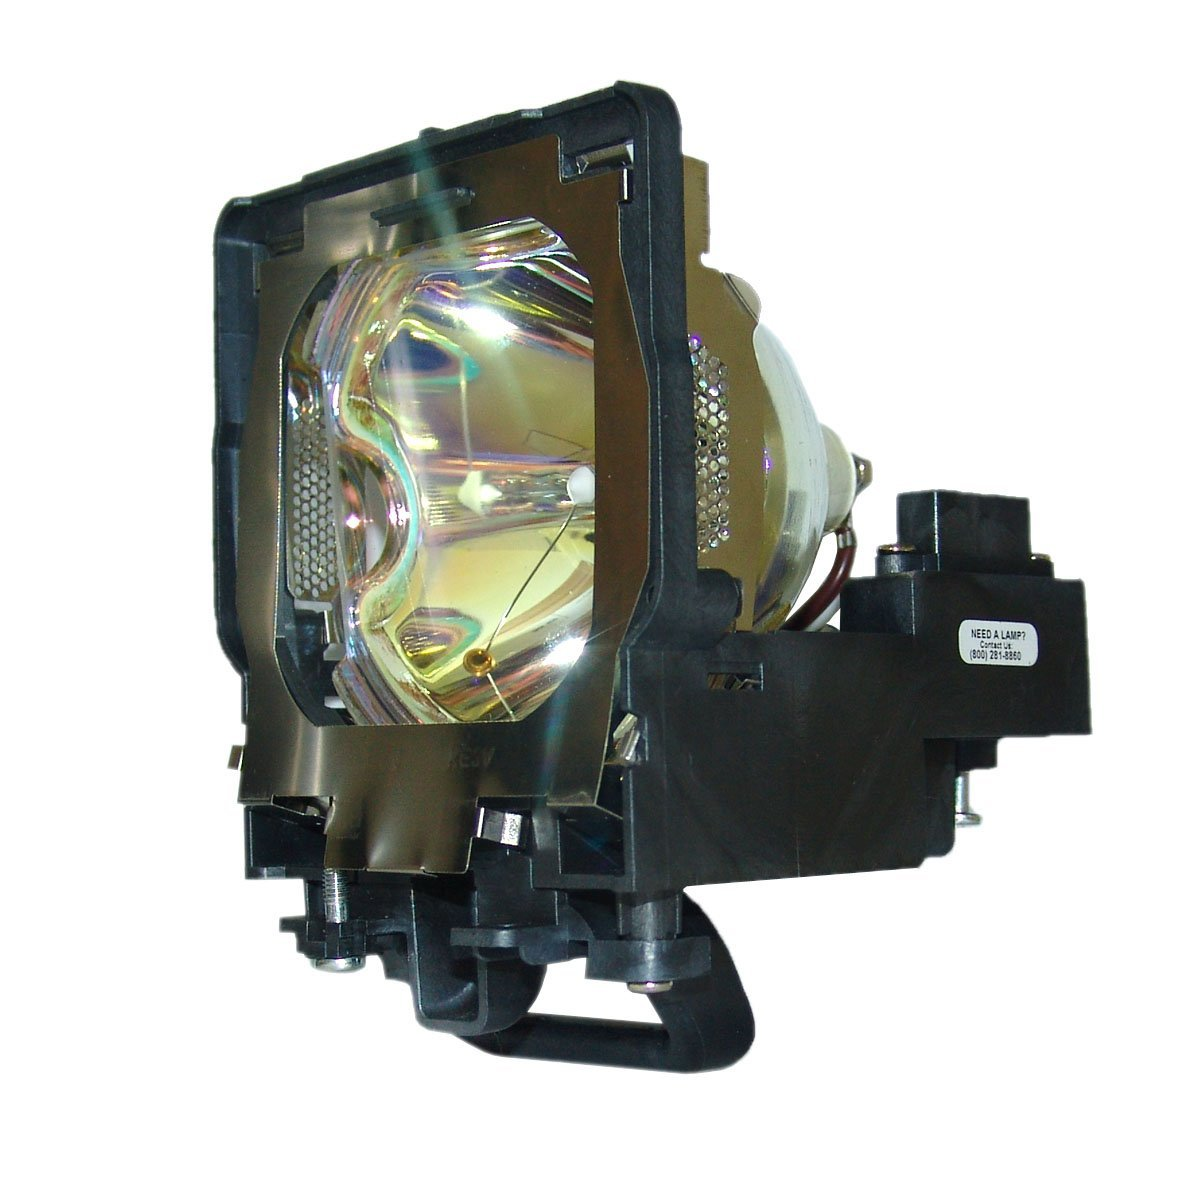 Projector Lamp Bulb POA-LMP109 LMP109 610-334-6267 for SANYO PLC-XF47 PLC-XF47W LC-XT5 LX1500 with housing compatible bare lamp for epson projector home cinema 9500ub